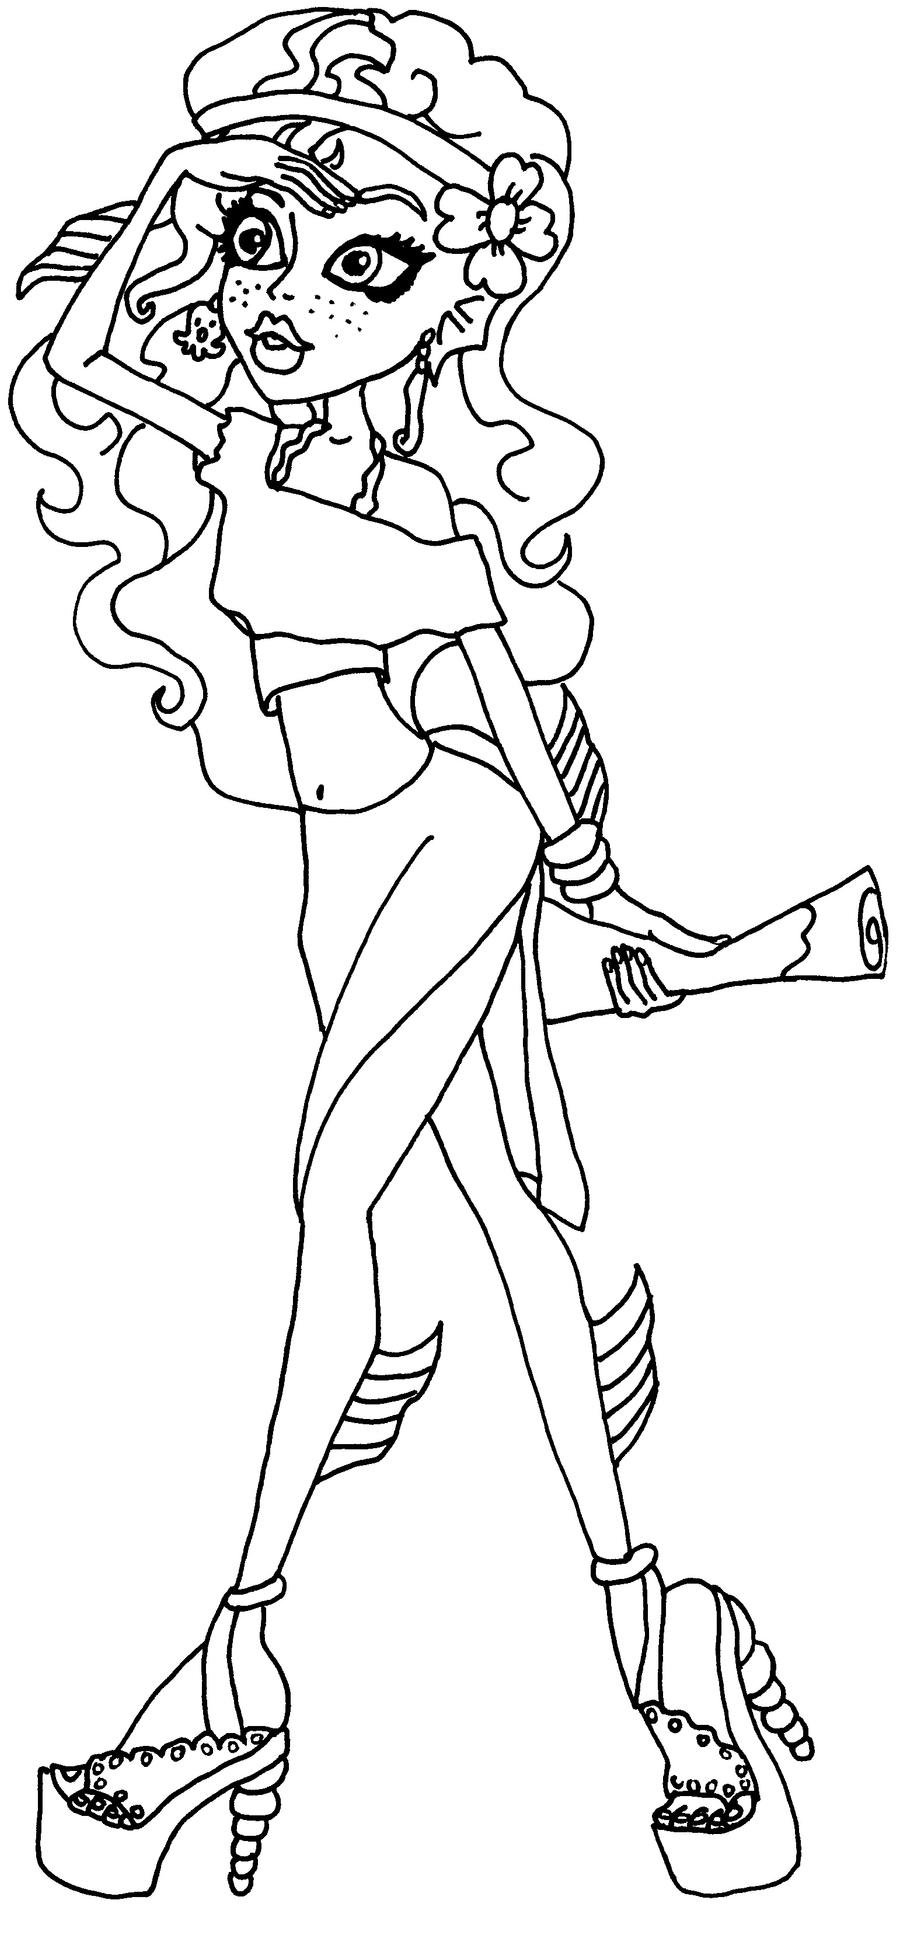 monster high coloring pages lagoona - photo#26